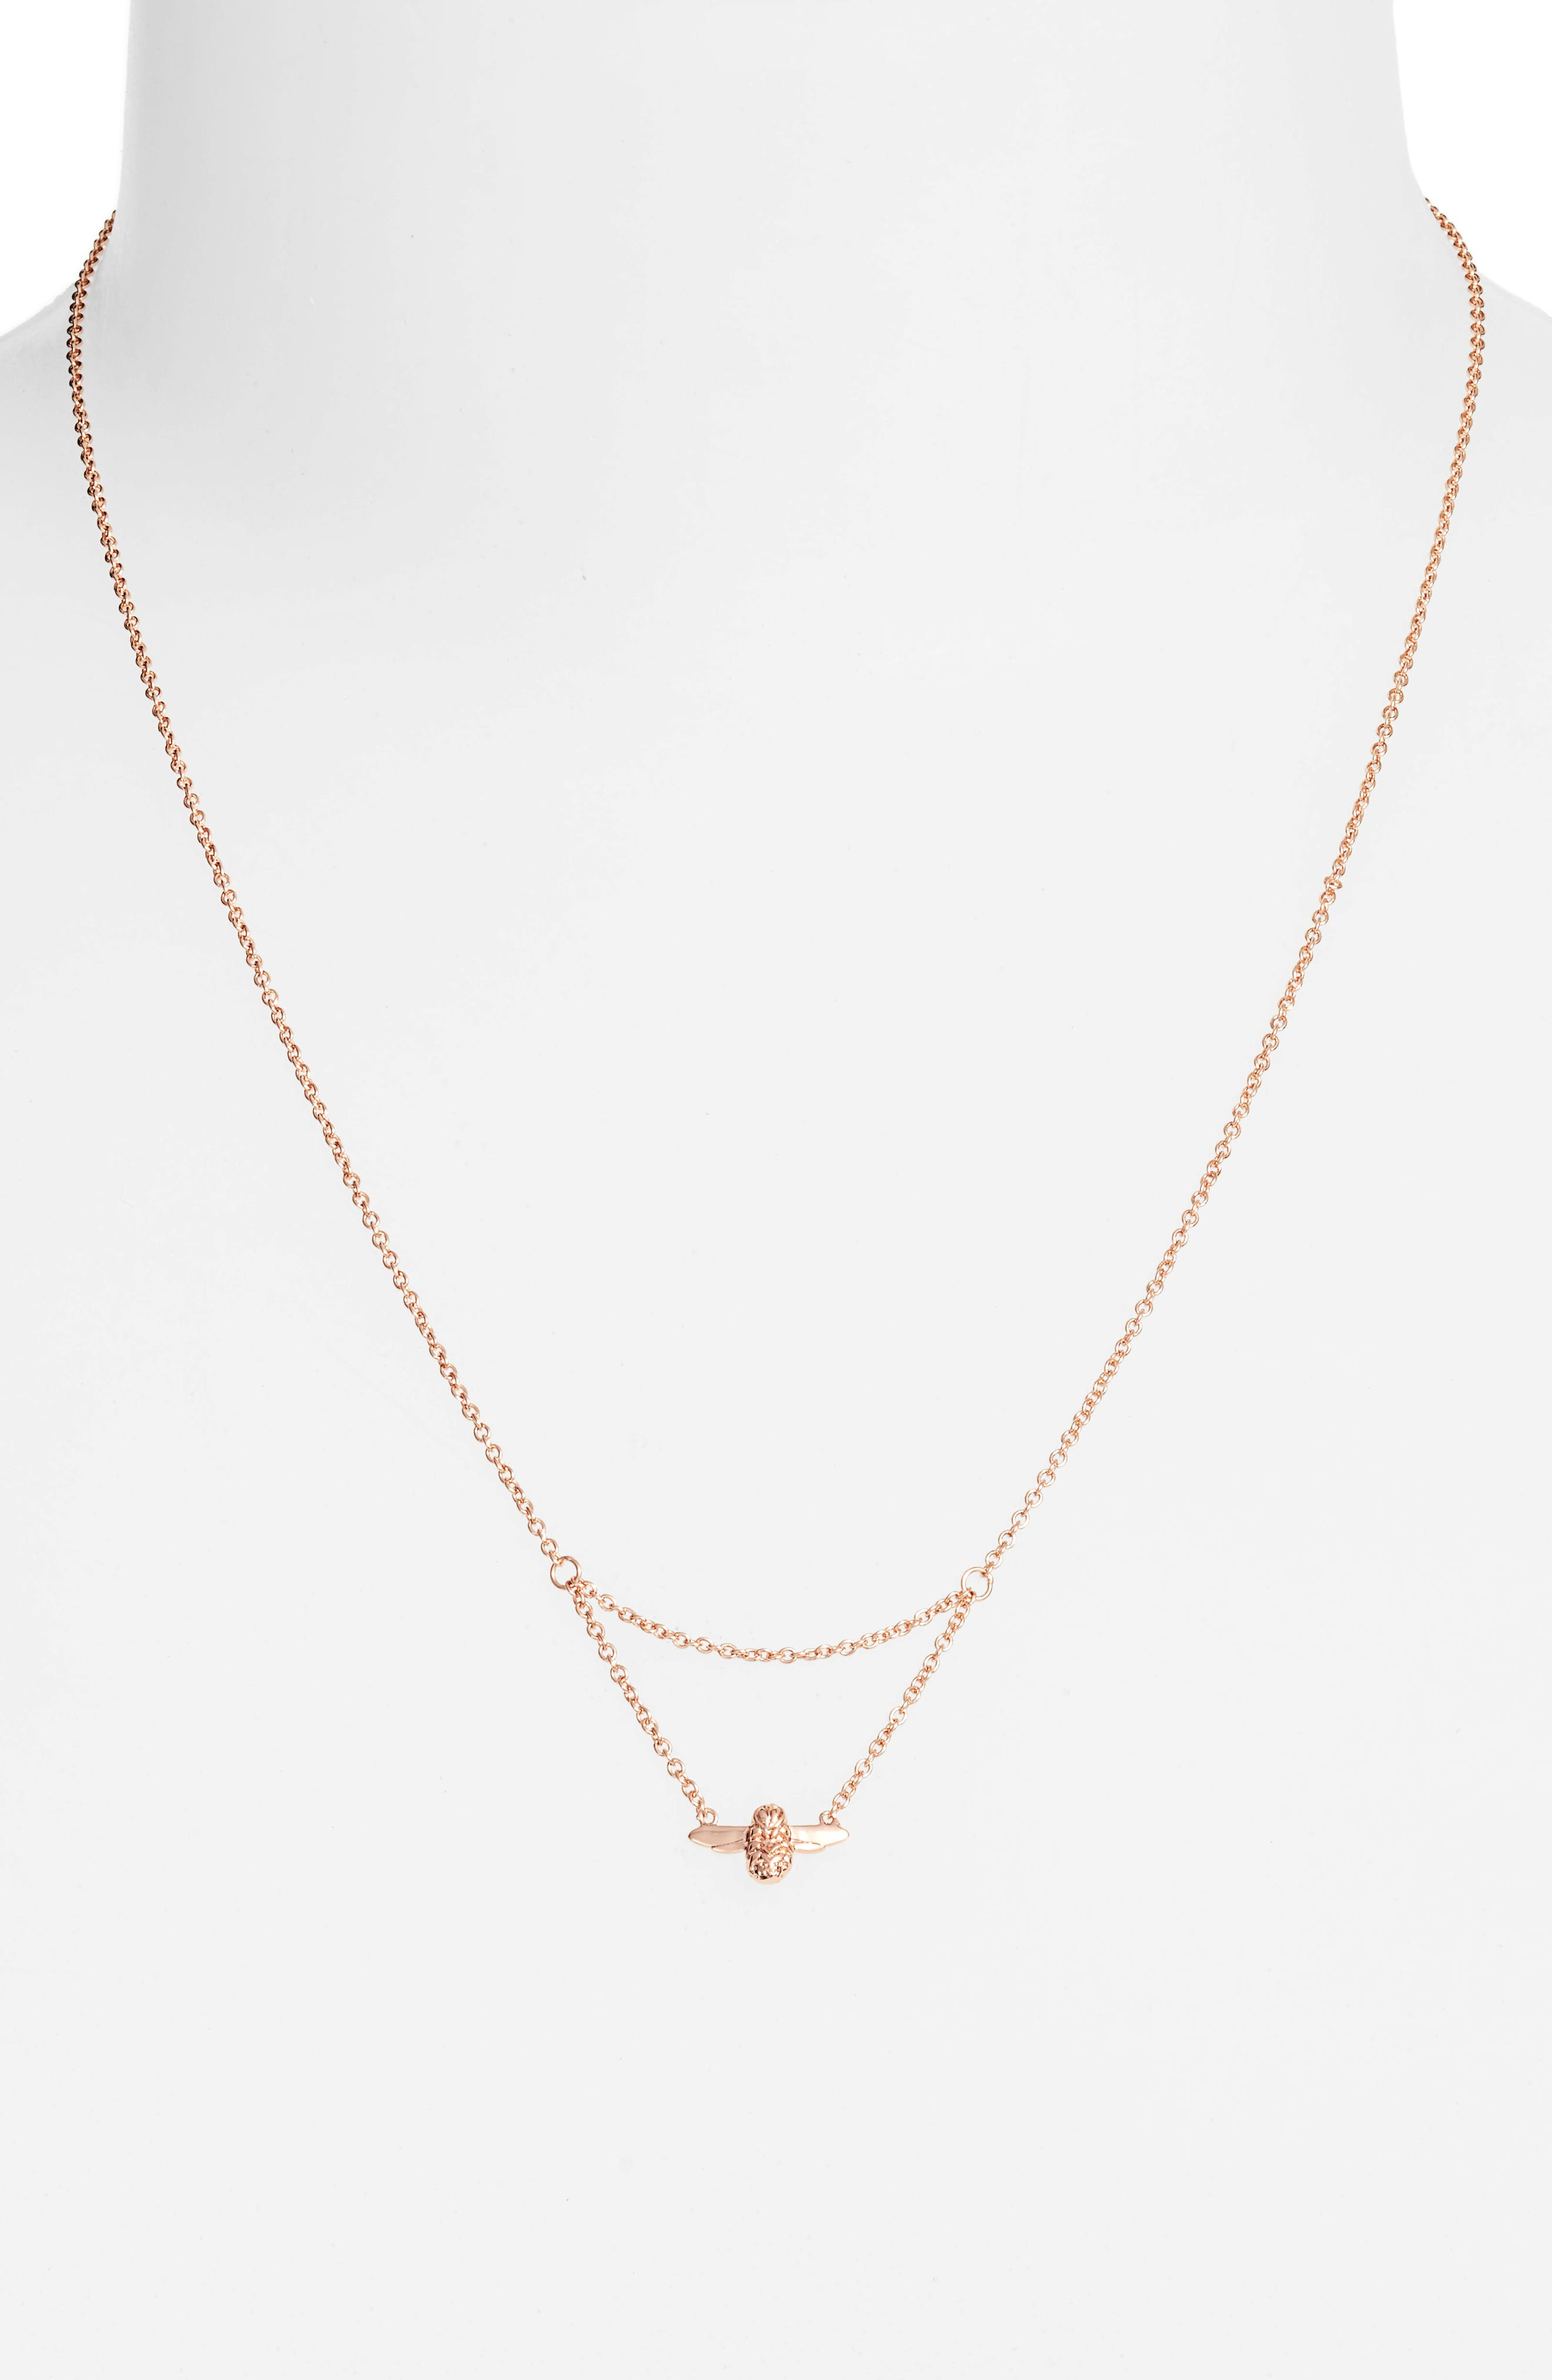 Queen Bee Pendant Necklace,                             Alternate thumbnail 2, color,                             Rose Gold